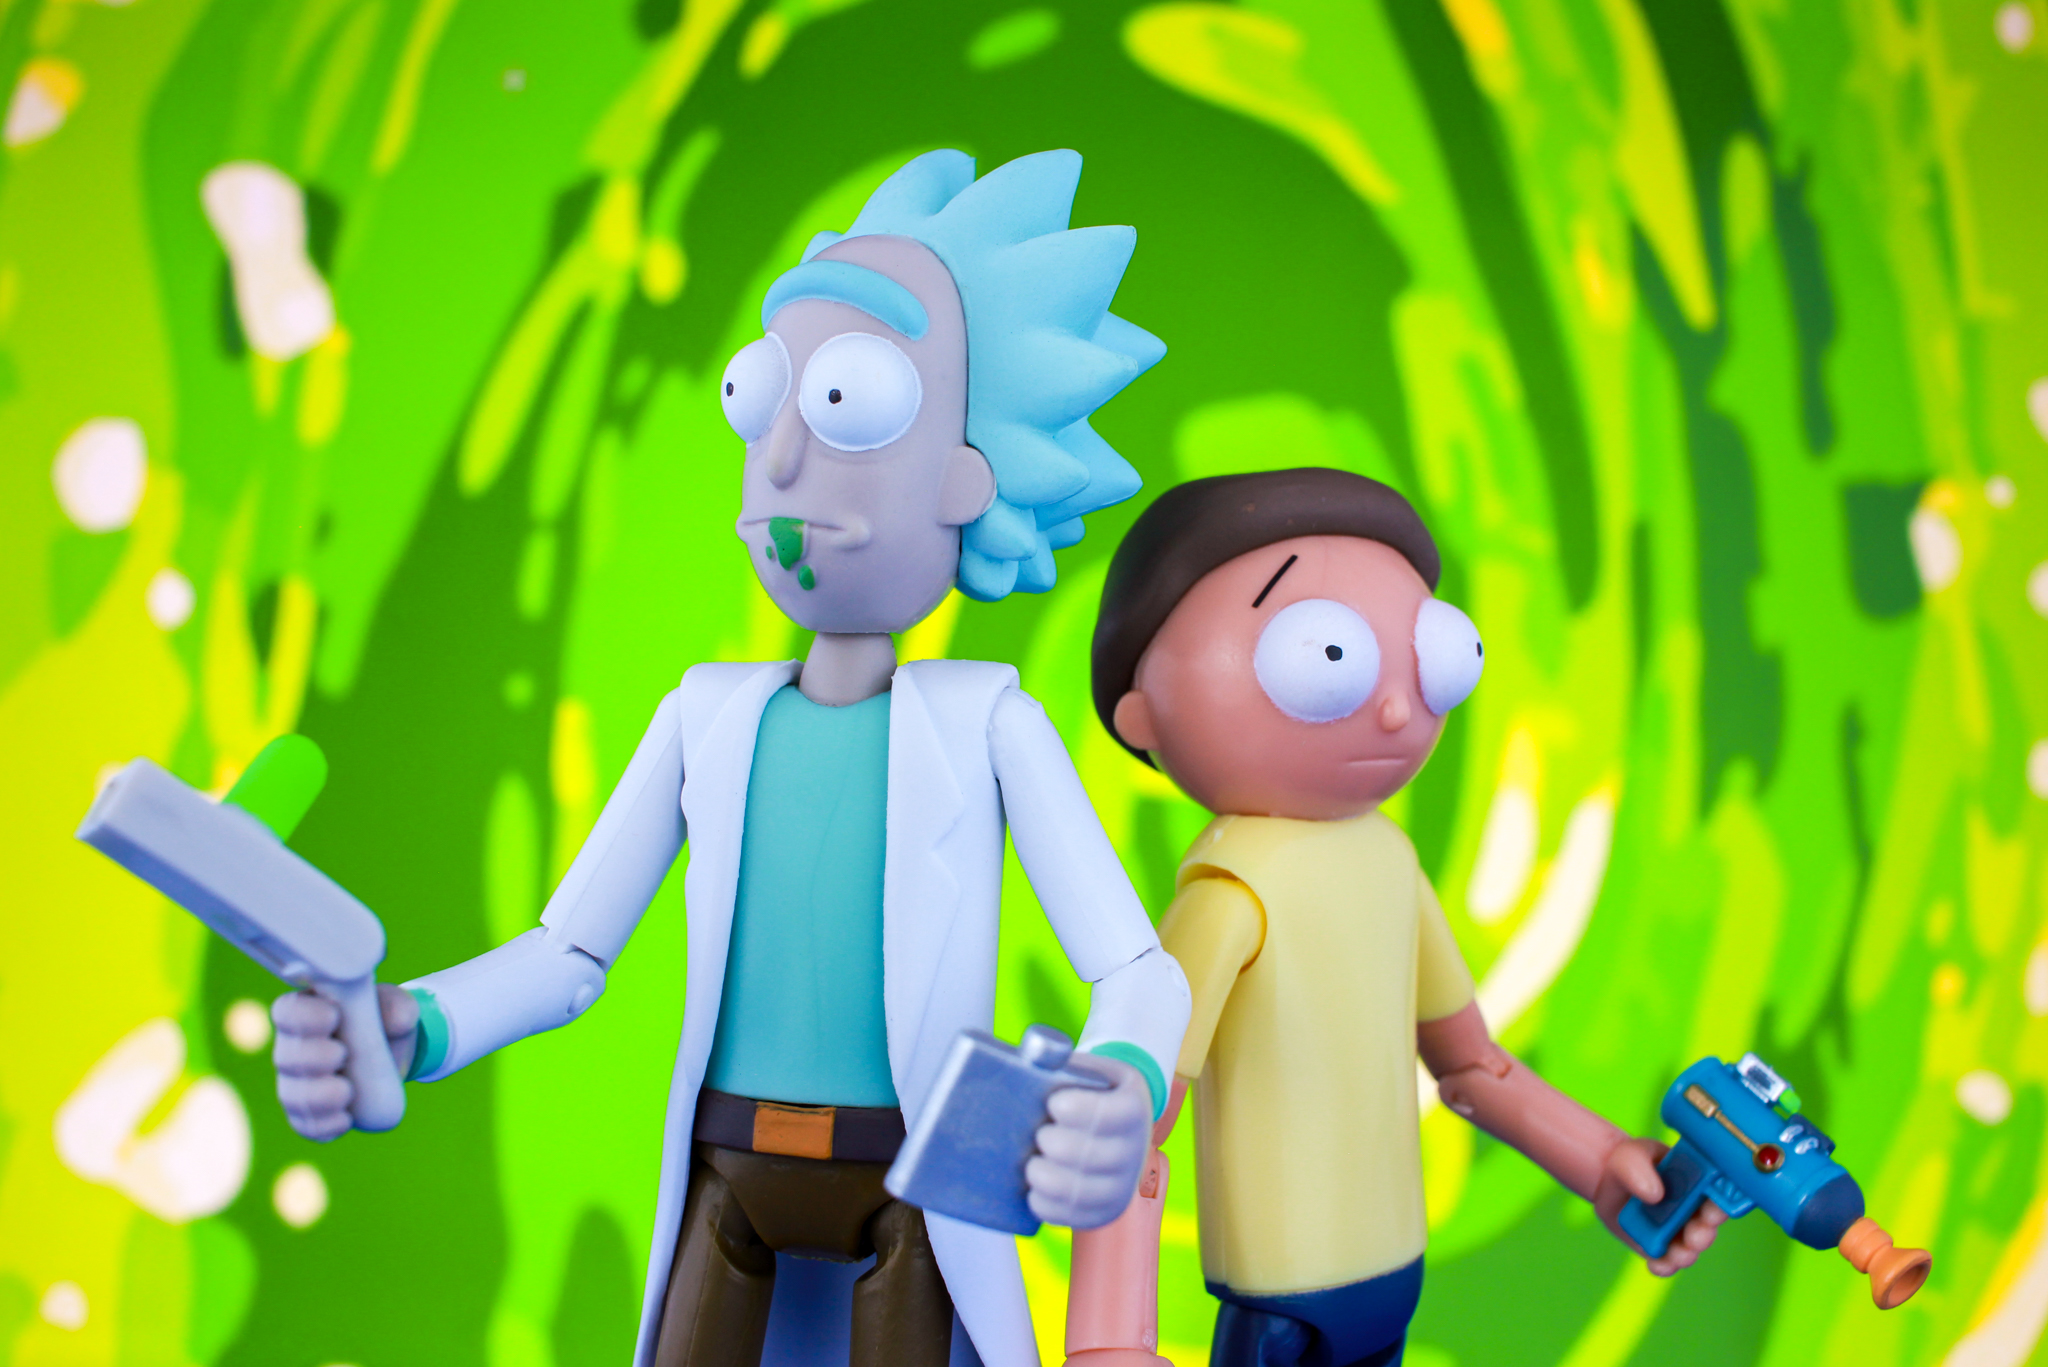 Review: Funko Rick and Morty 5-inch Figures